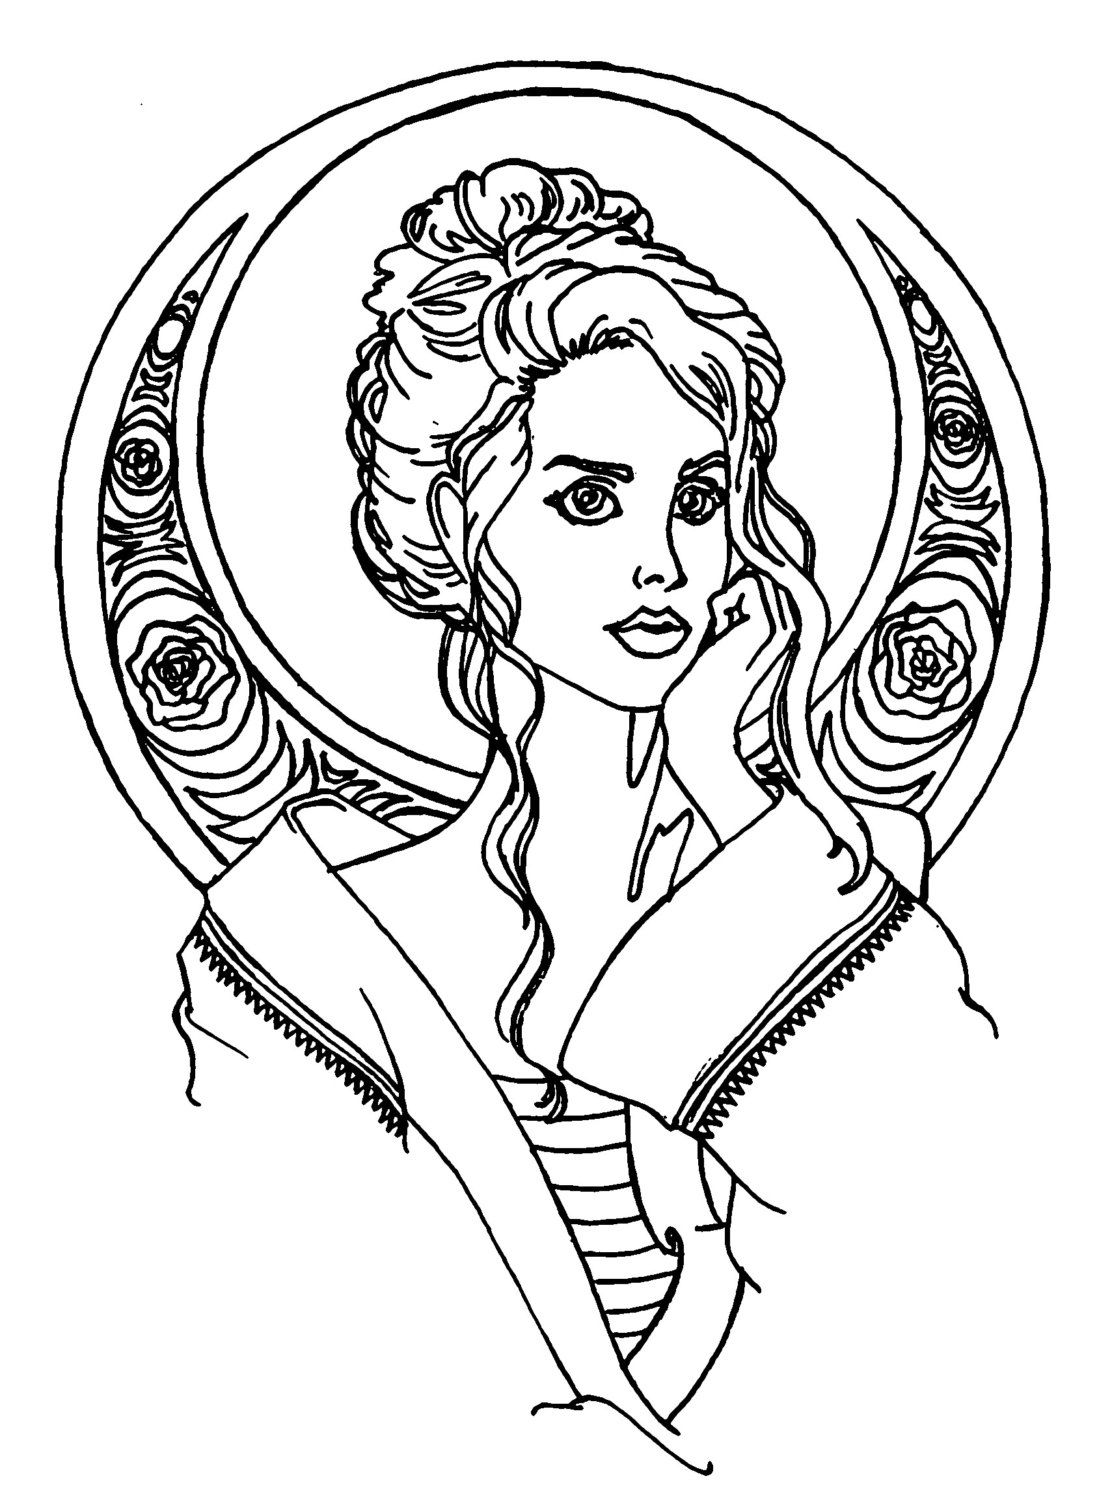 Sirens of Song Adult Coloring Book Pages (Digital Download 2 pages) Lana del Rey and Melanie Martinez by SweetLikeAntiFreeze on Etsy